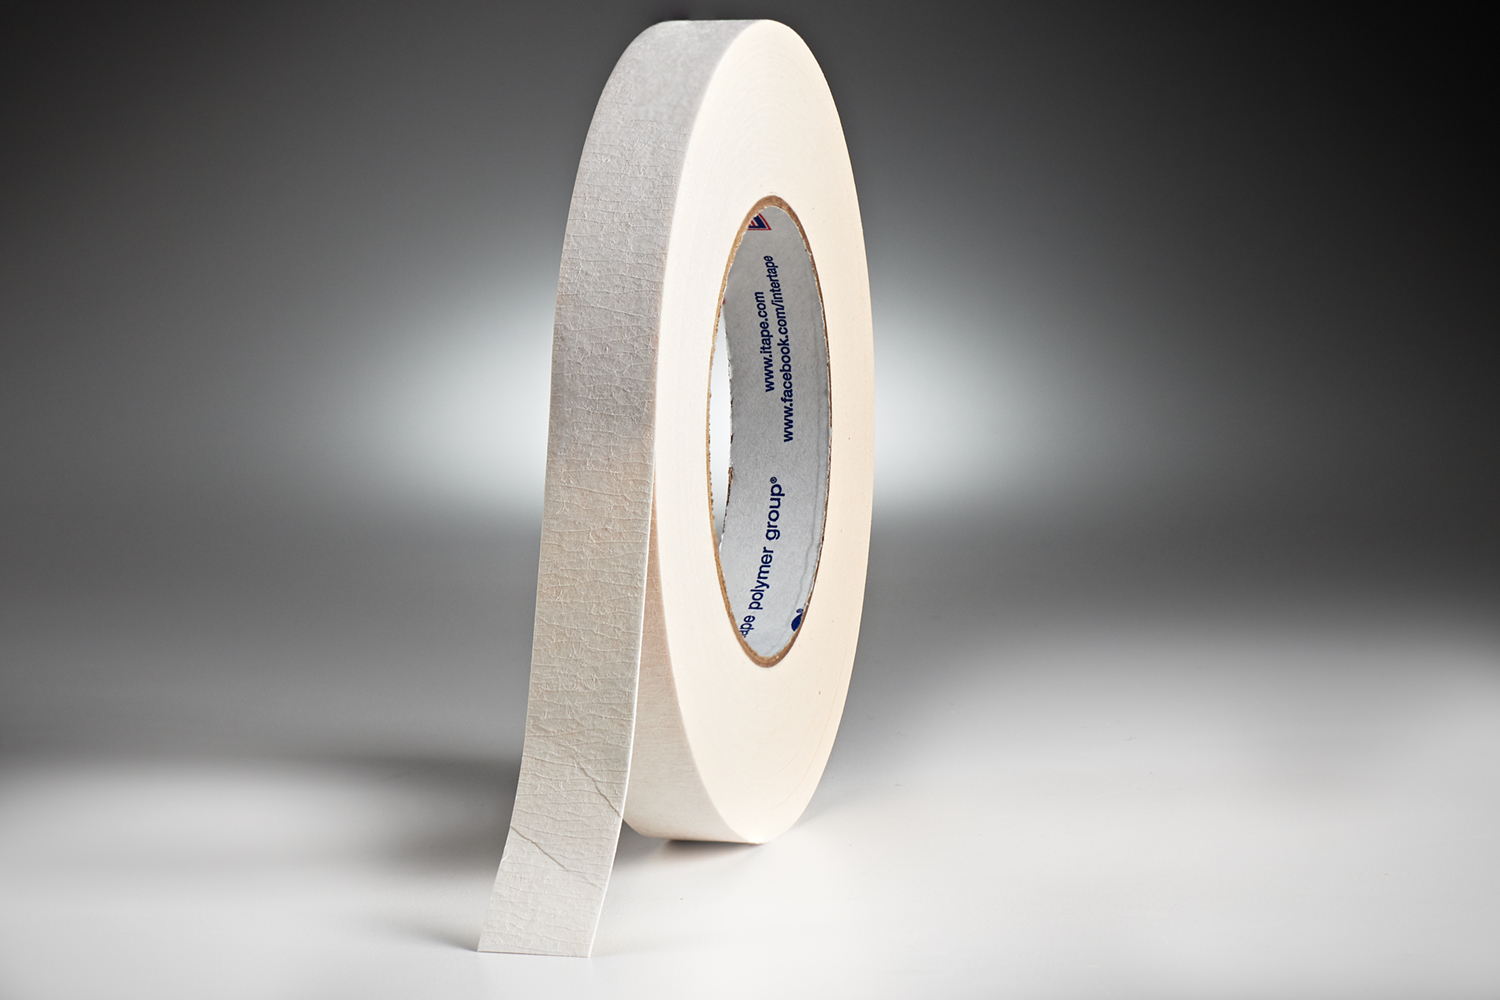 508010 #S 10533 Double SidedTape 3 4inx36yds 942